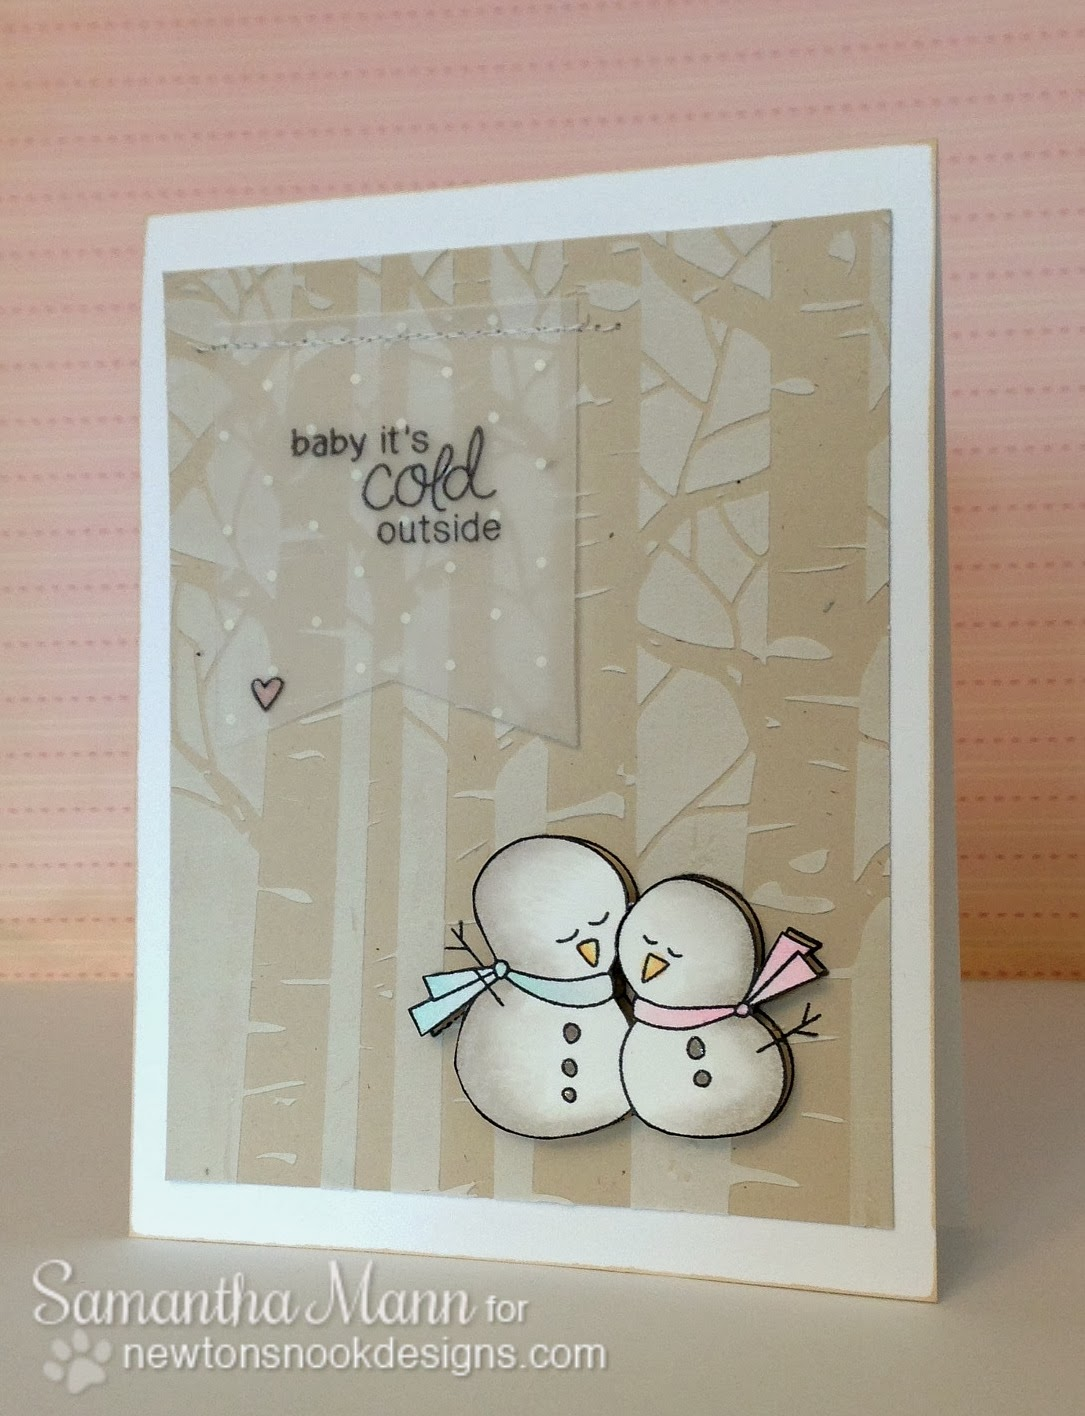 Sweet Winter Snowman Card by Samantha Mann using Frozen Friends Stamp set by Newton's Nook Designs